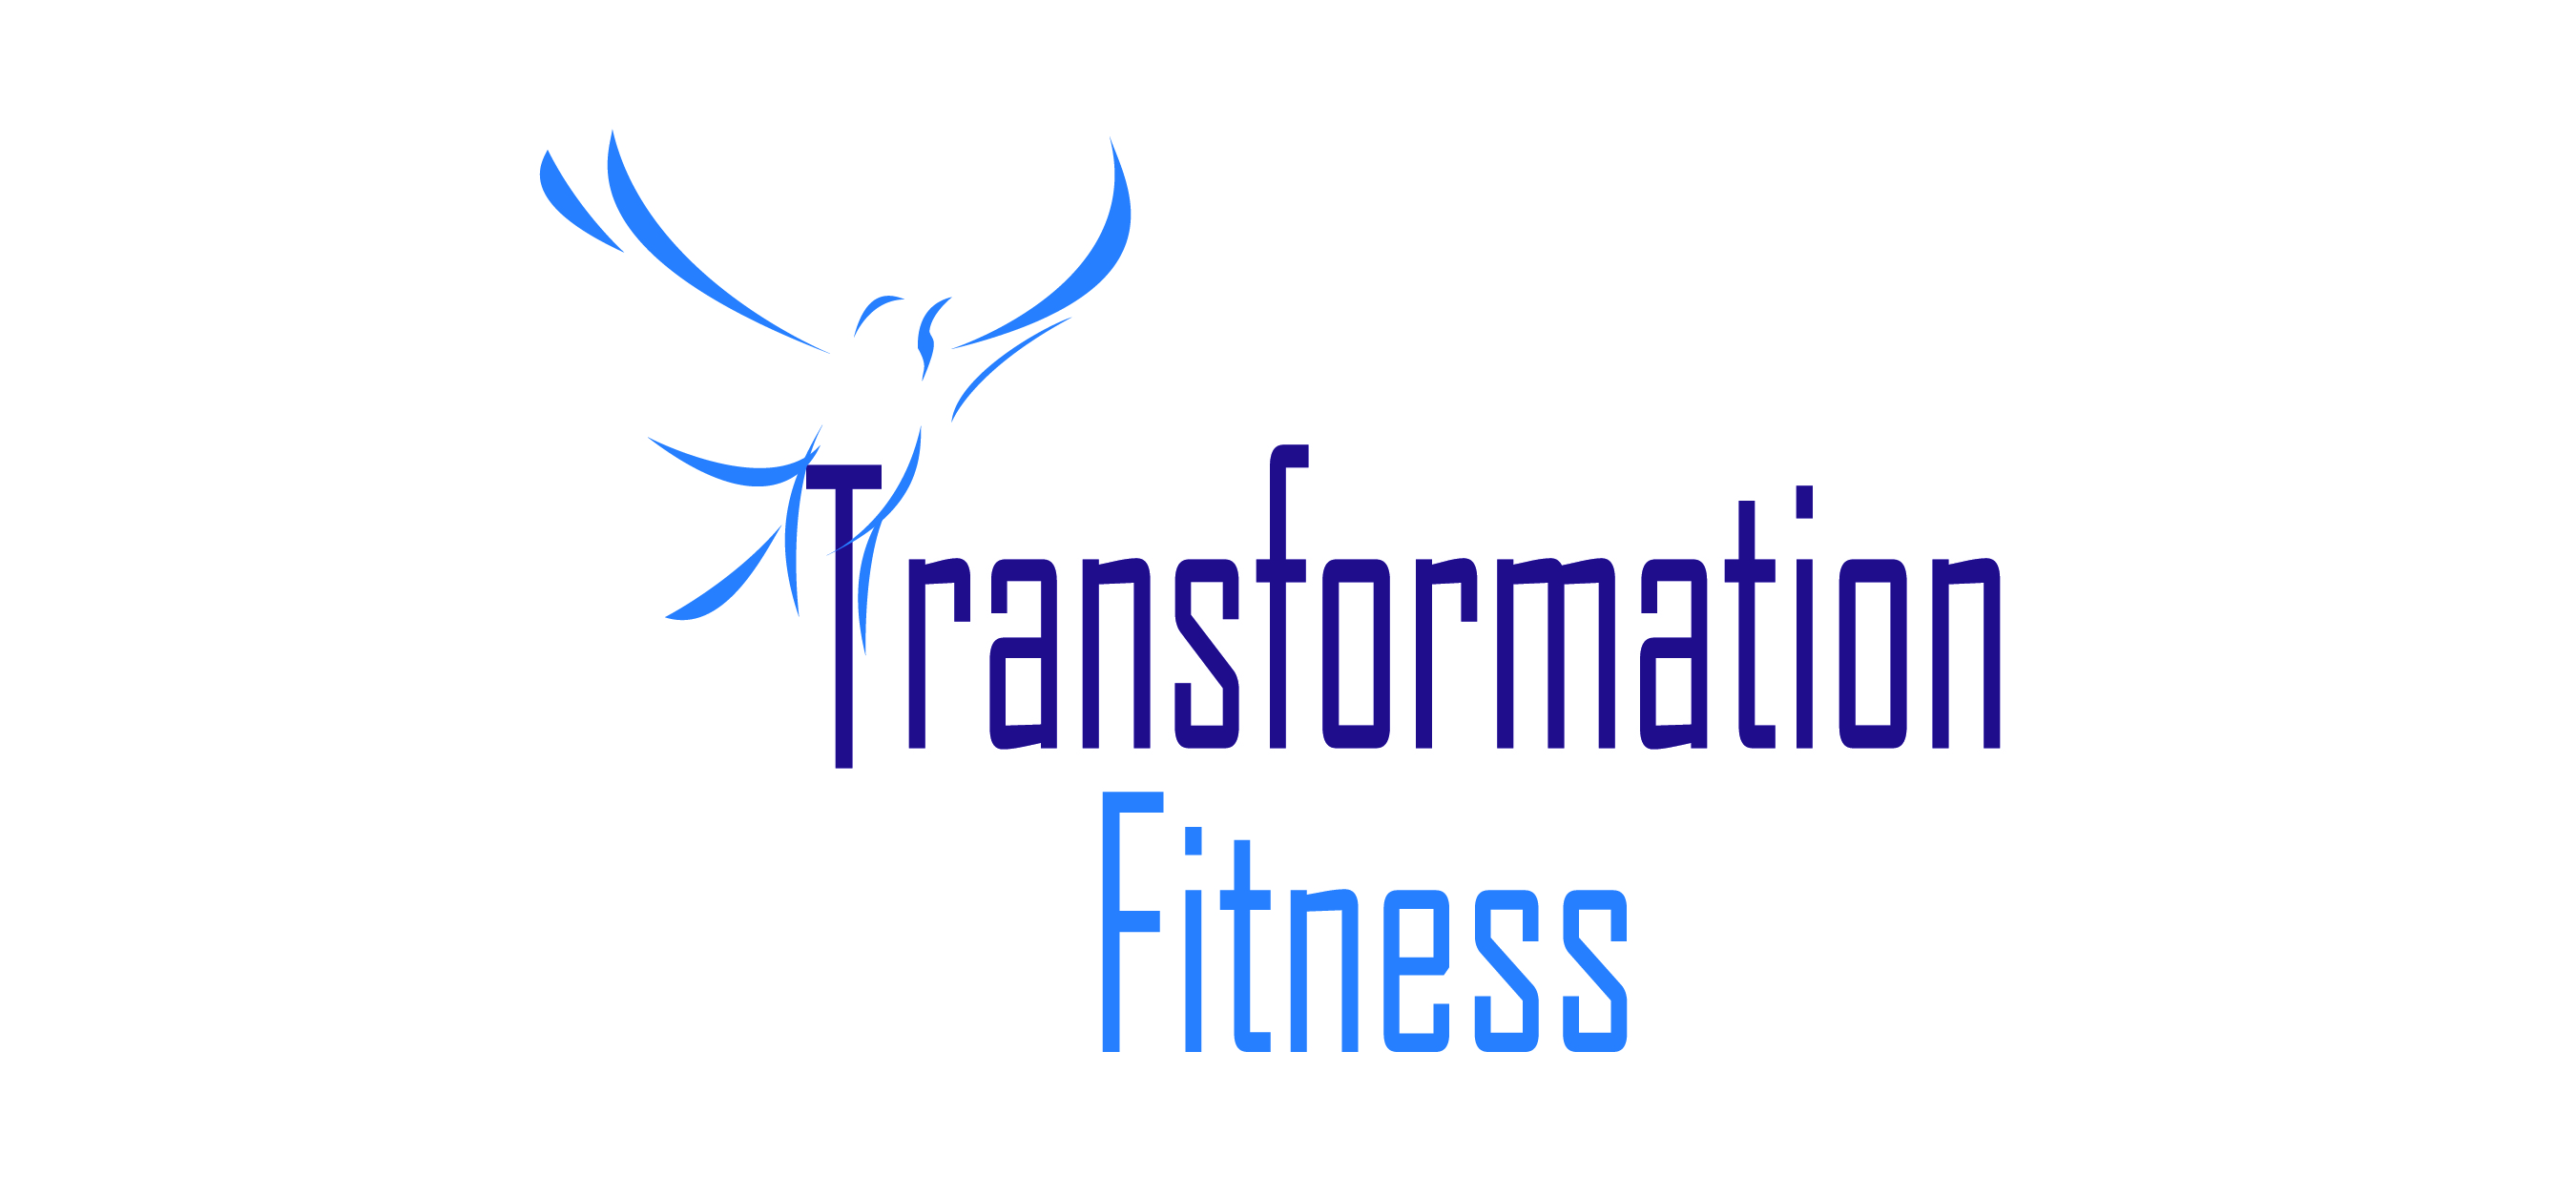 Logo Design by Michelle Boone-Schmidt - Entry No. 48 in the Logo Design Contest Inspiring Logo Design for Transformation fitness.